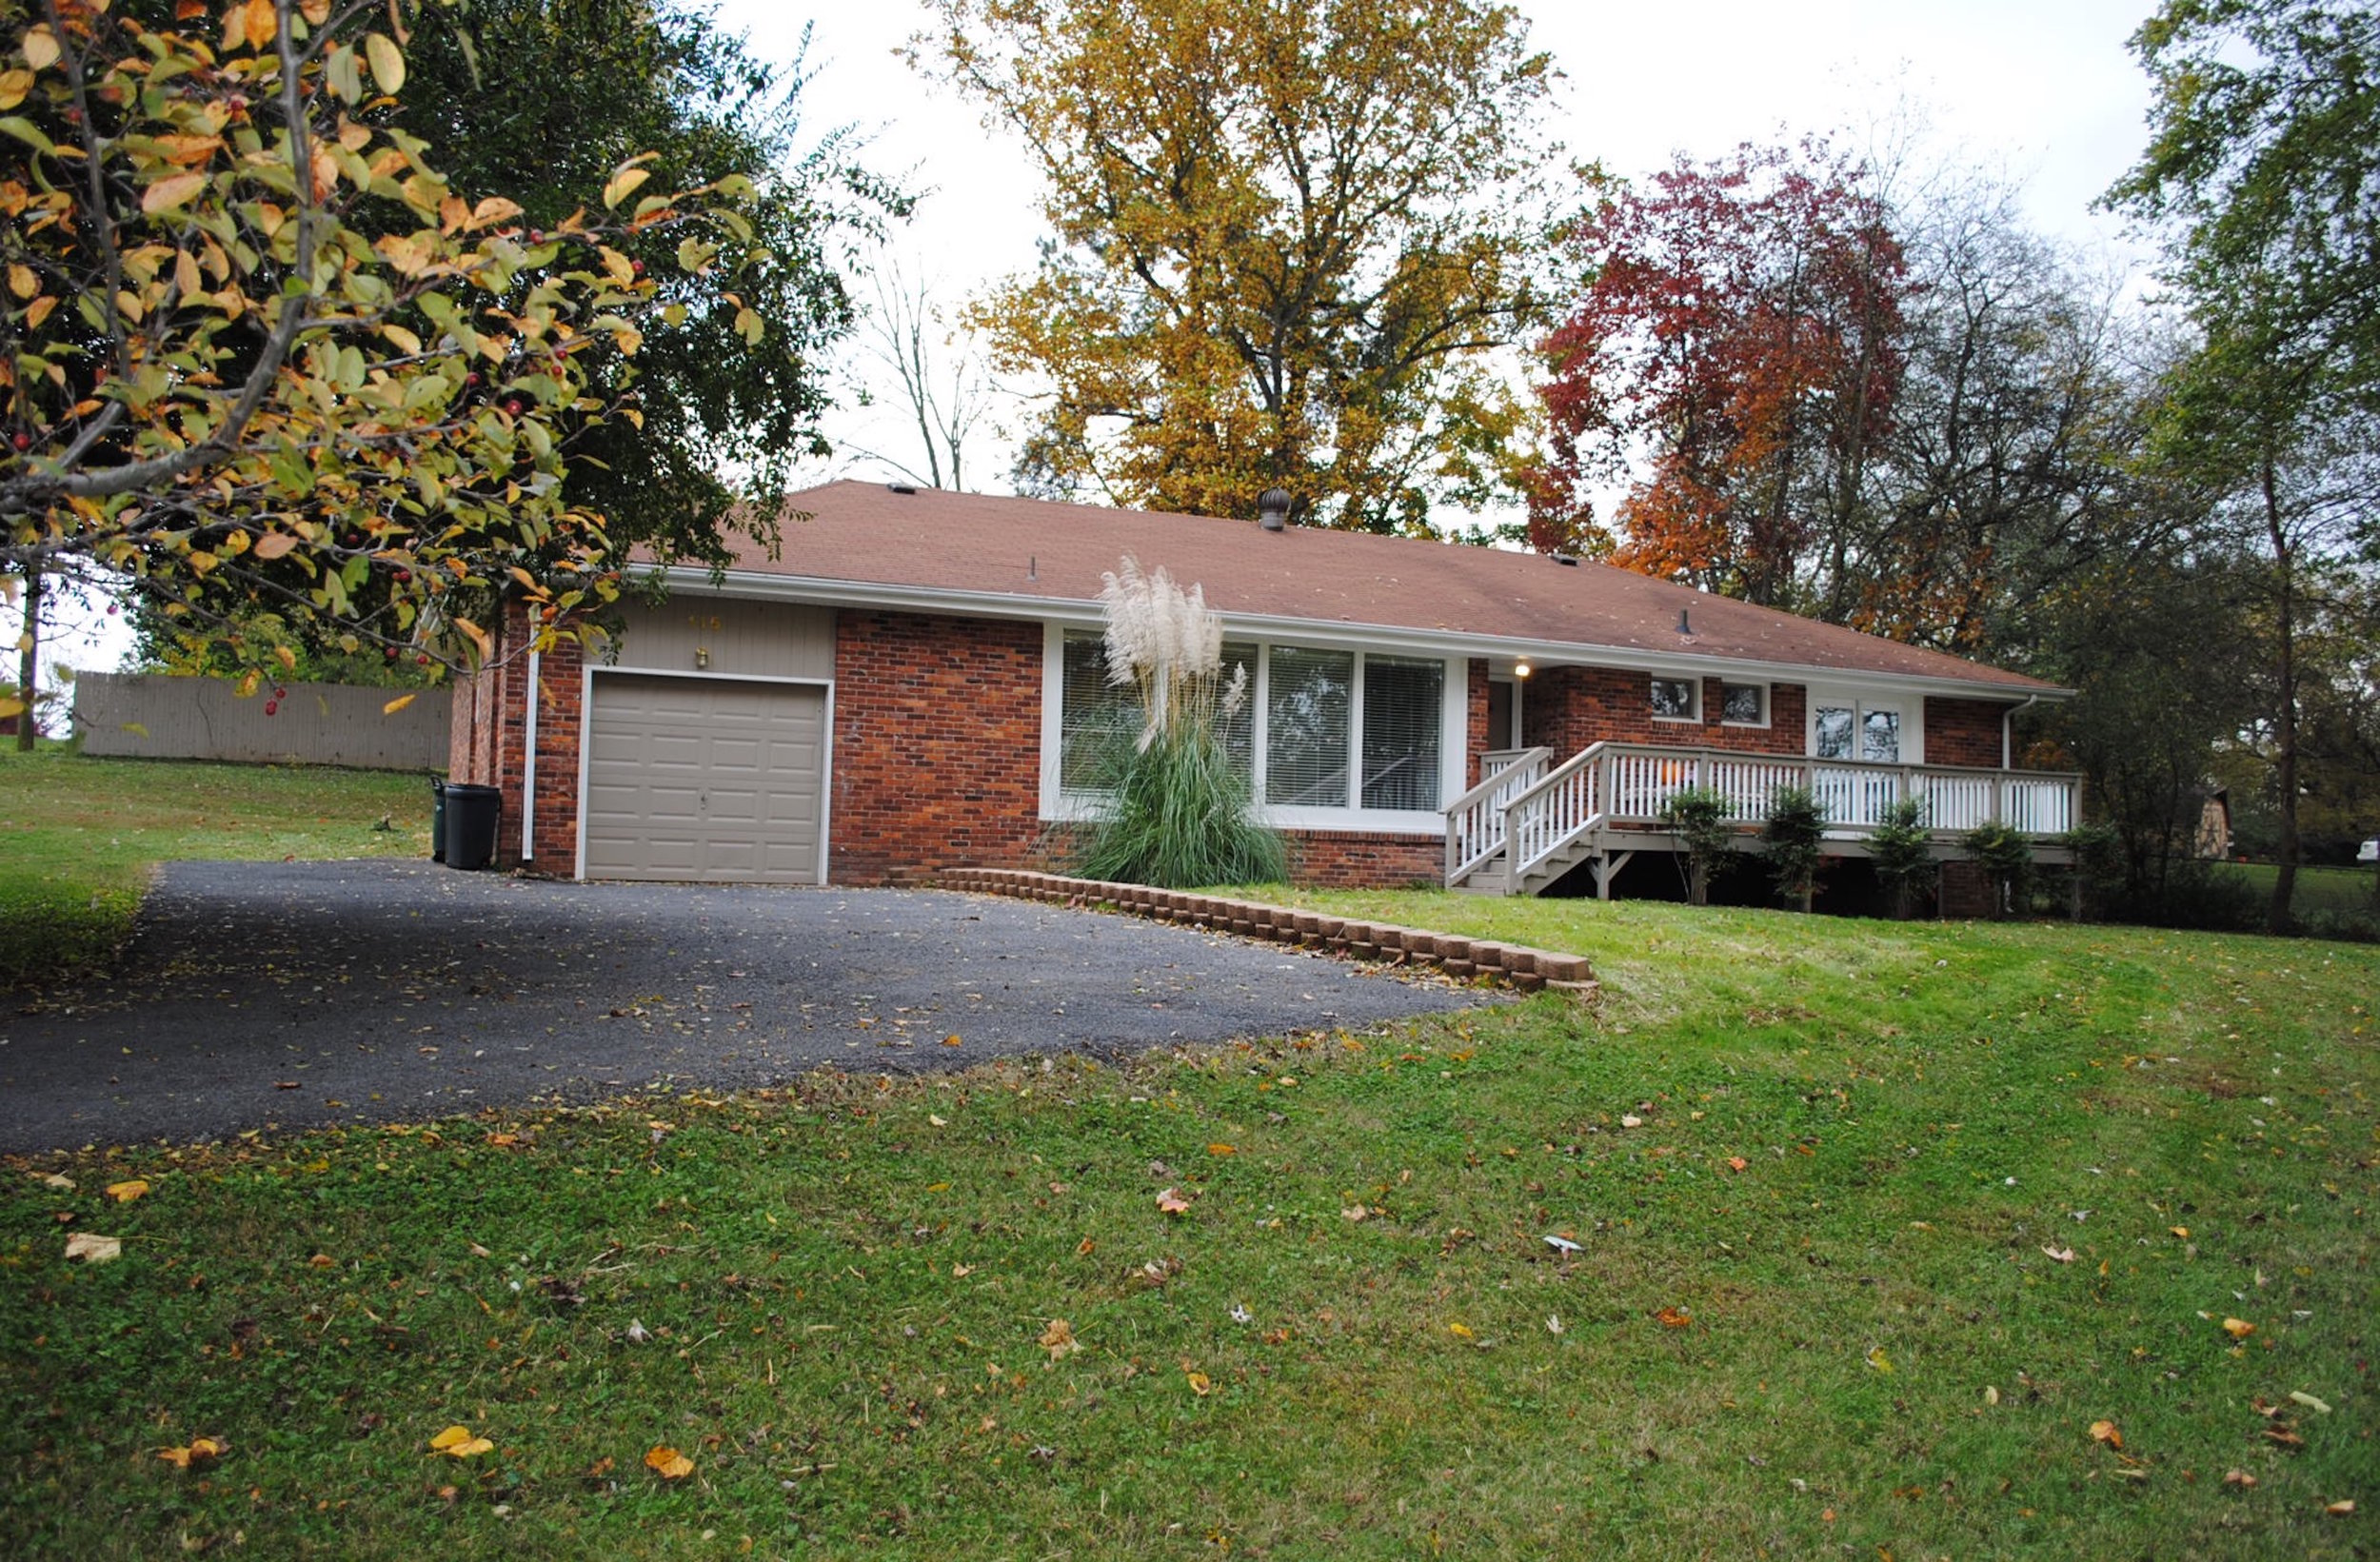 115 RENTED HENDERSONVILLE: 115 Circle: House 3 Br, 2 Ba